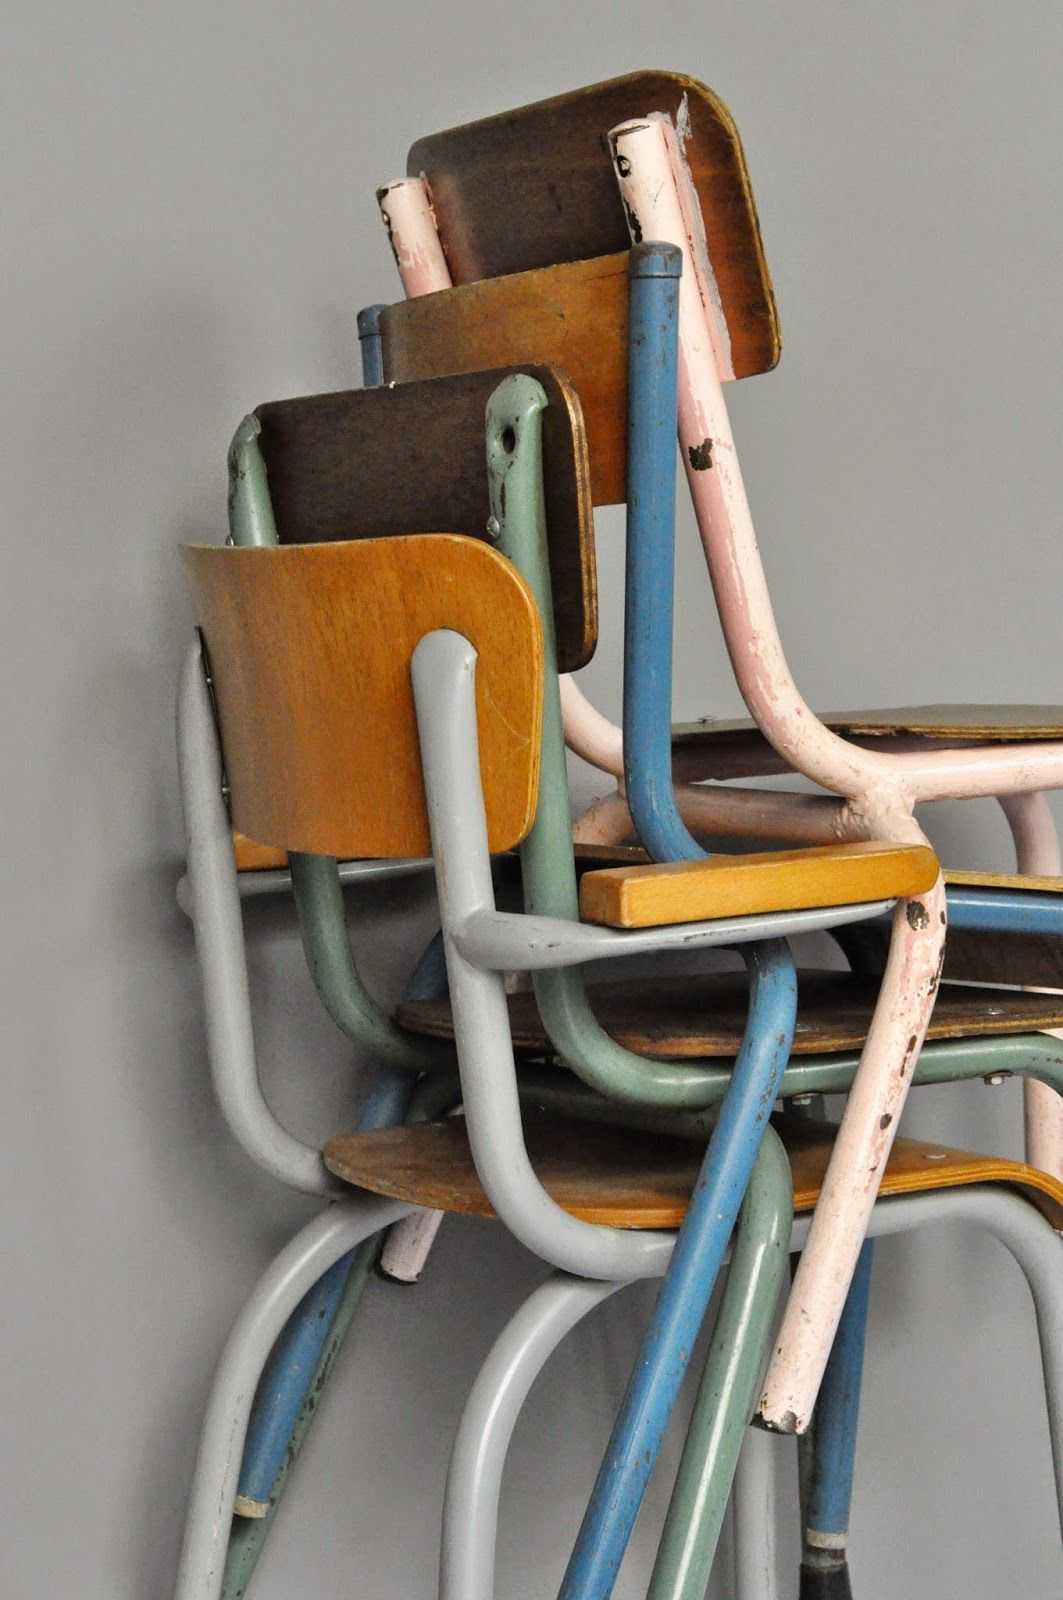 Vintage School Chairs Retro Battered School Chairs To Kick Off A Little Theme Here Of